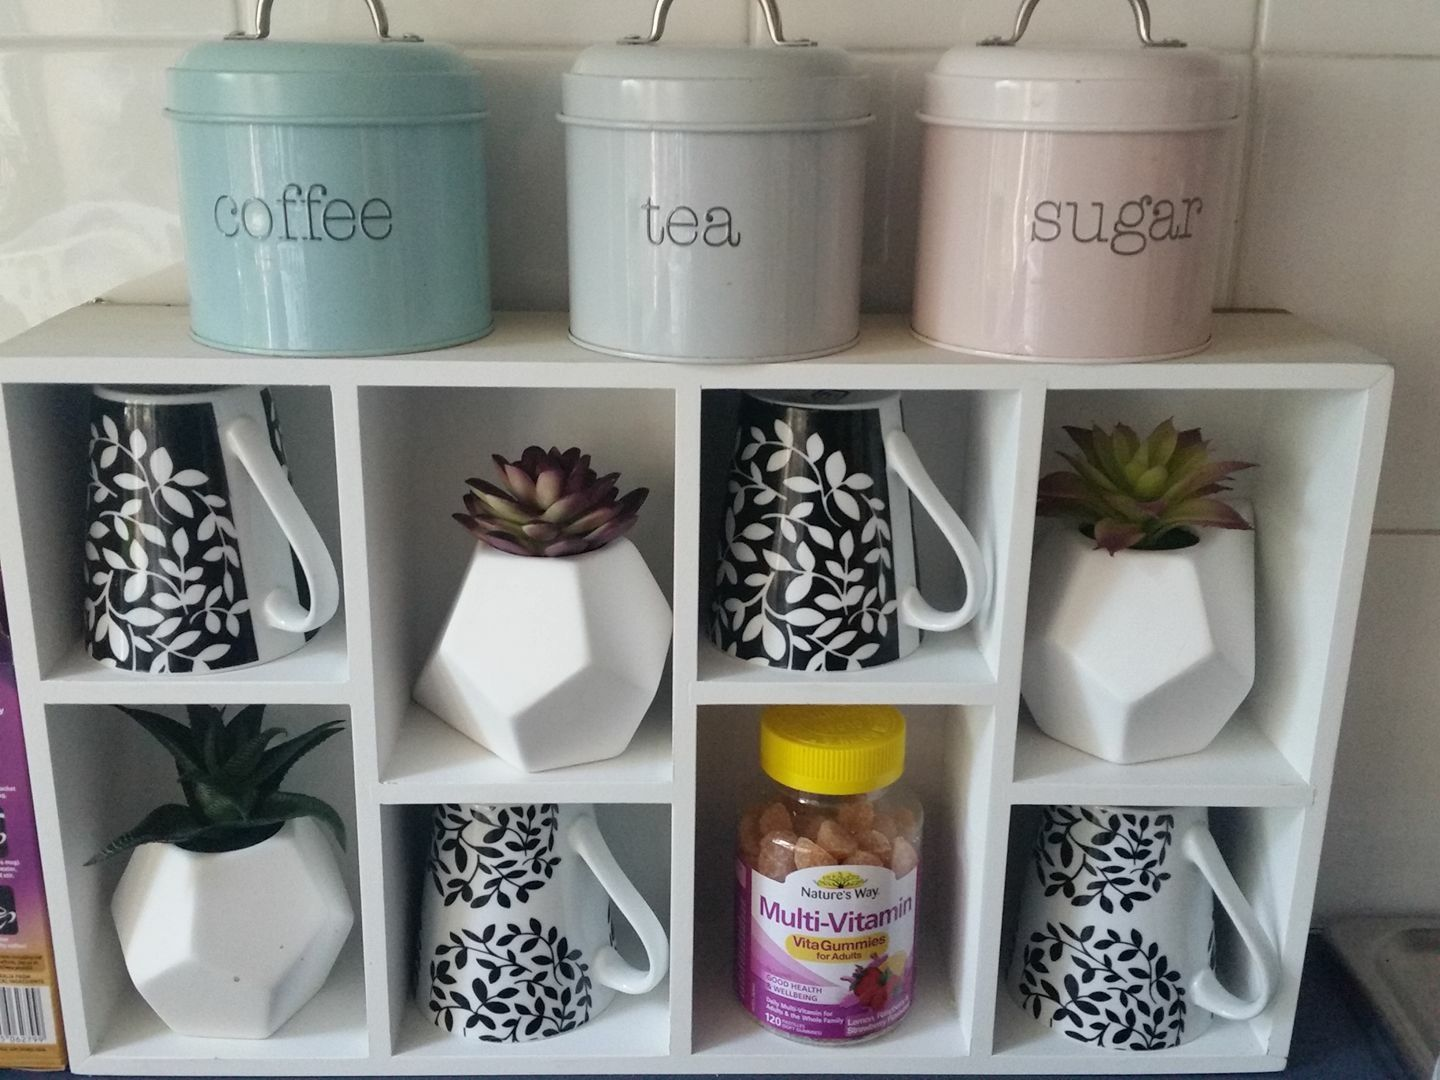 Pin By Kimberly Kjar On Kmart Kmart Hacks Kmart Decor Kitchen Decor Kmart